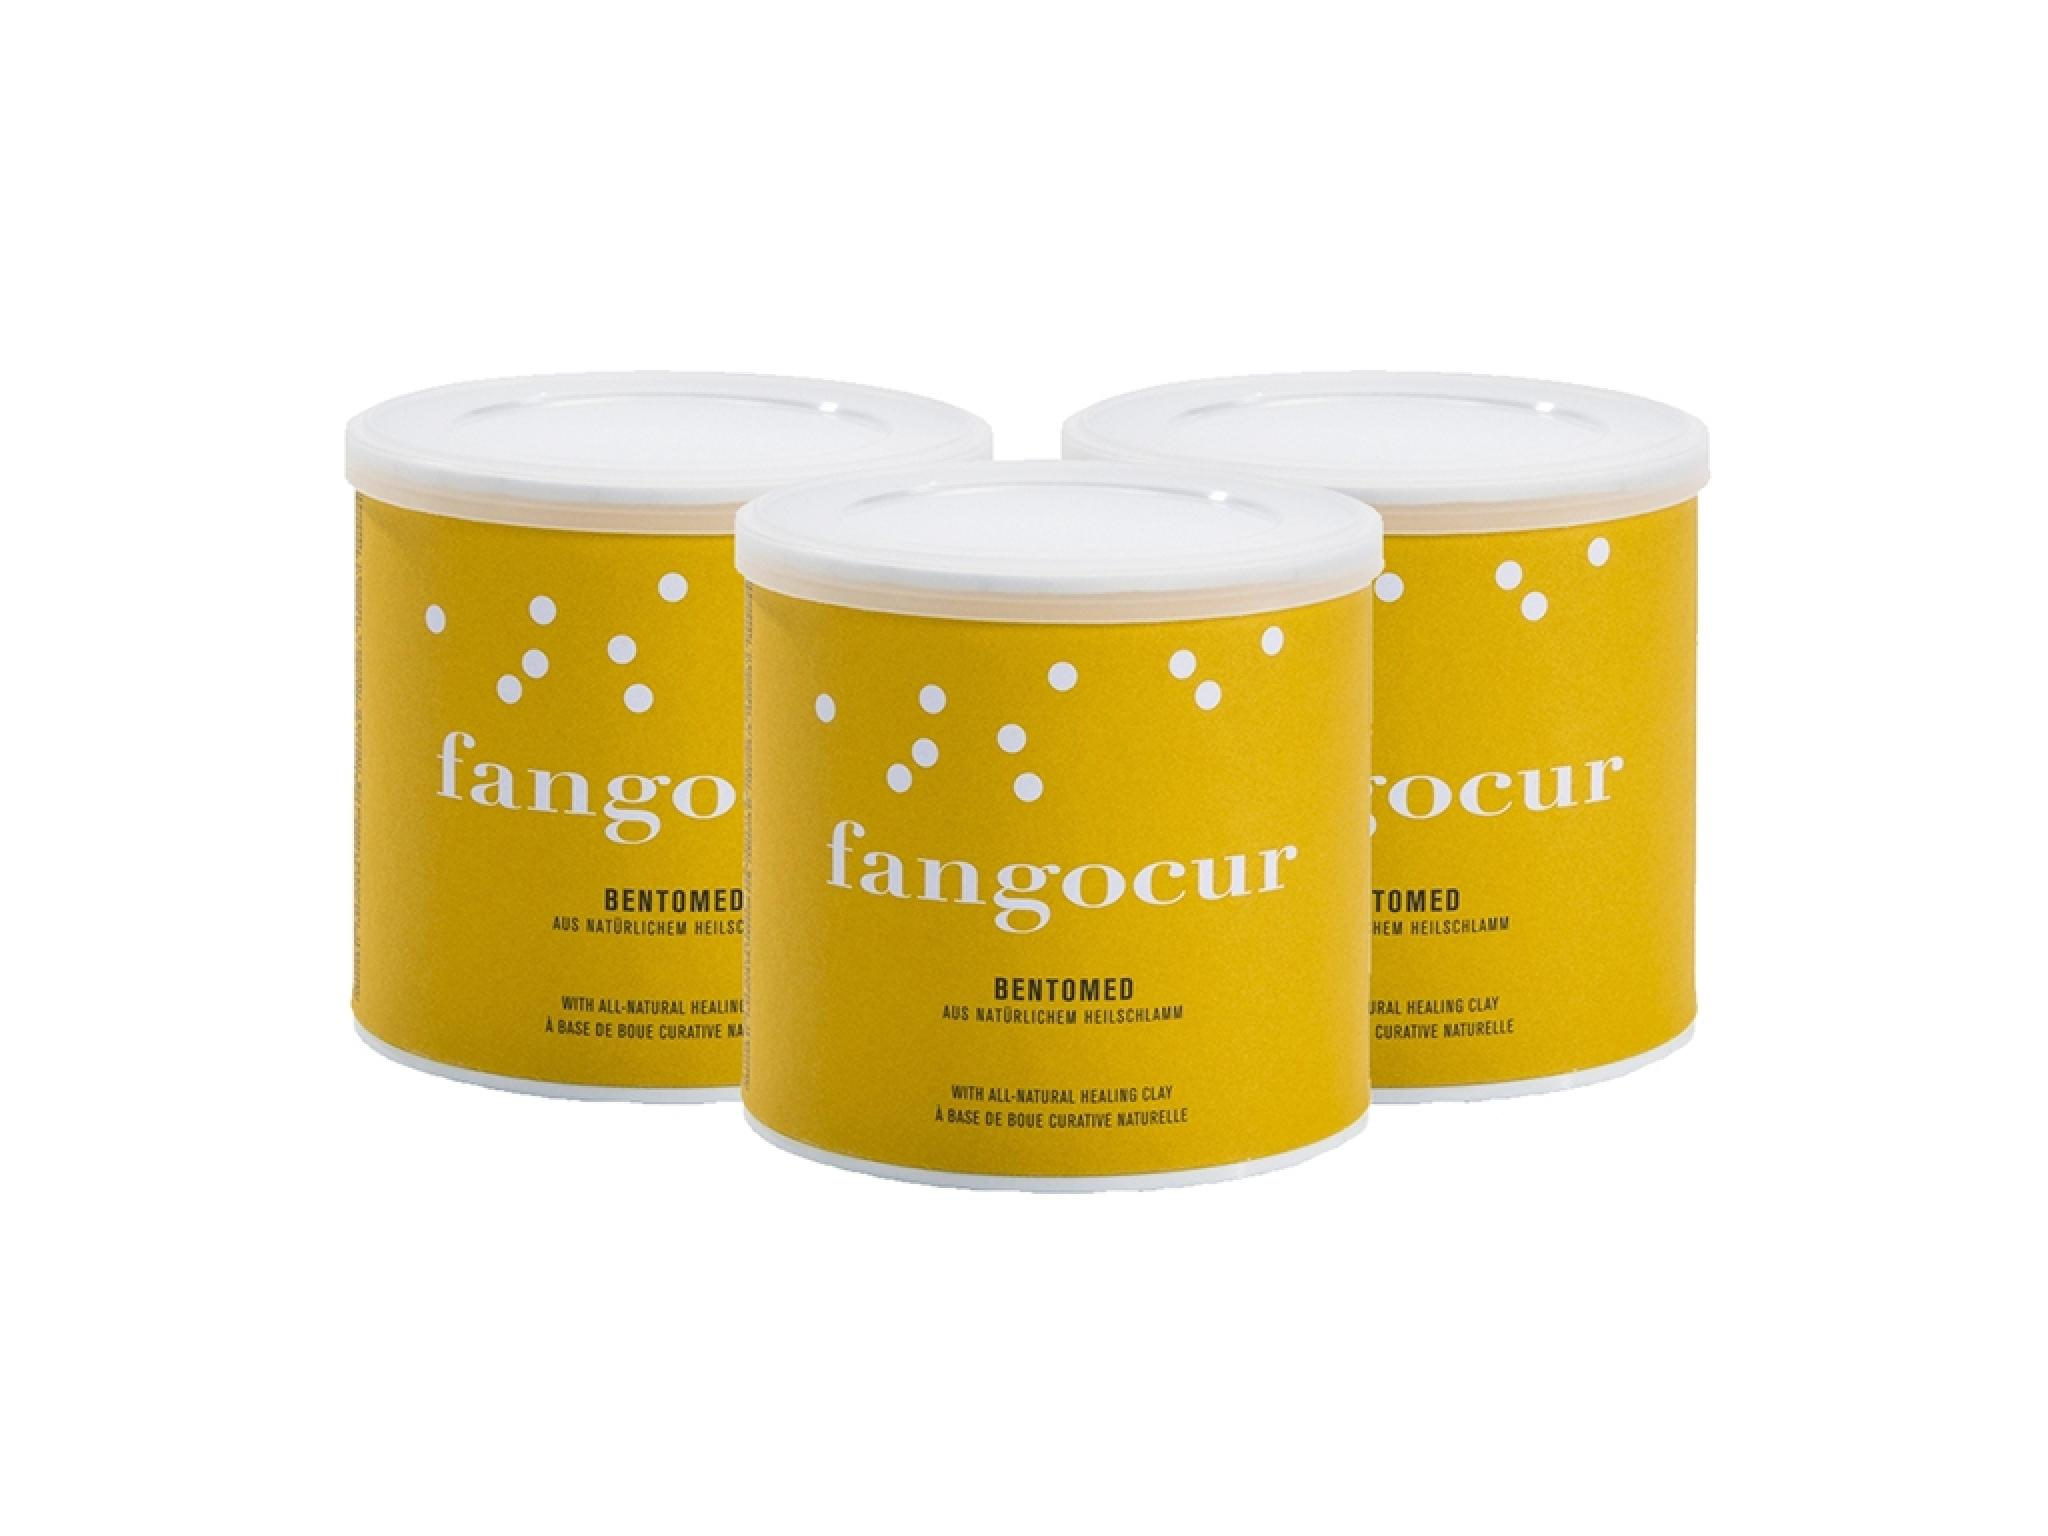 fangocur Bentomed 3x 200ml Pack